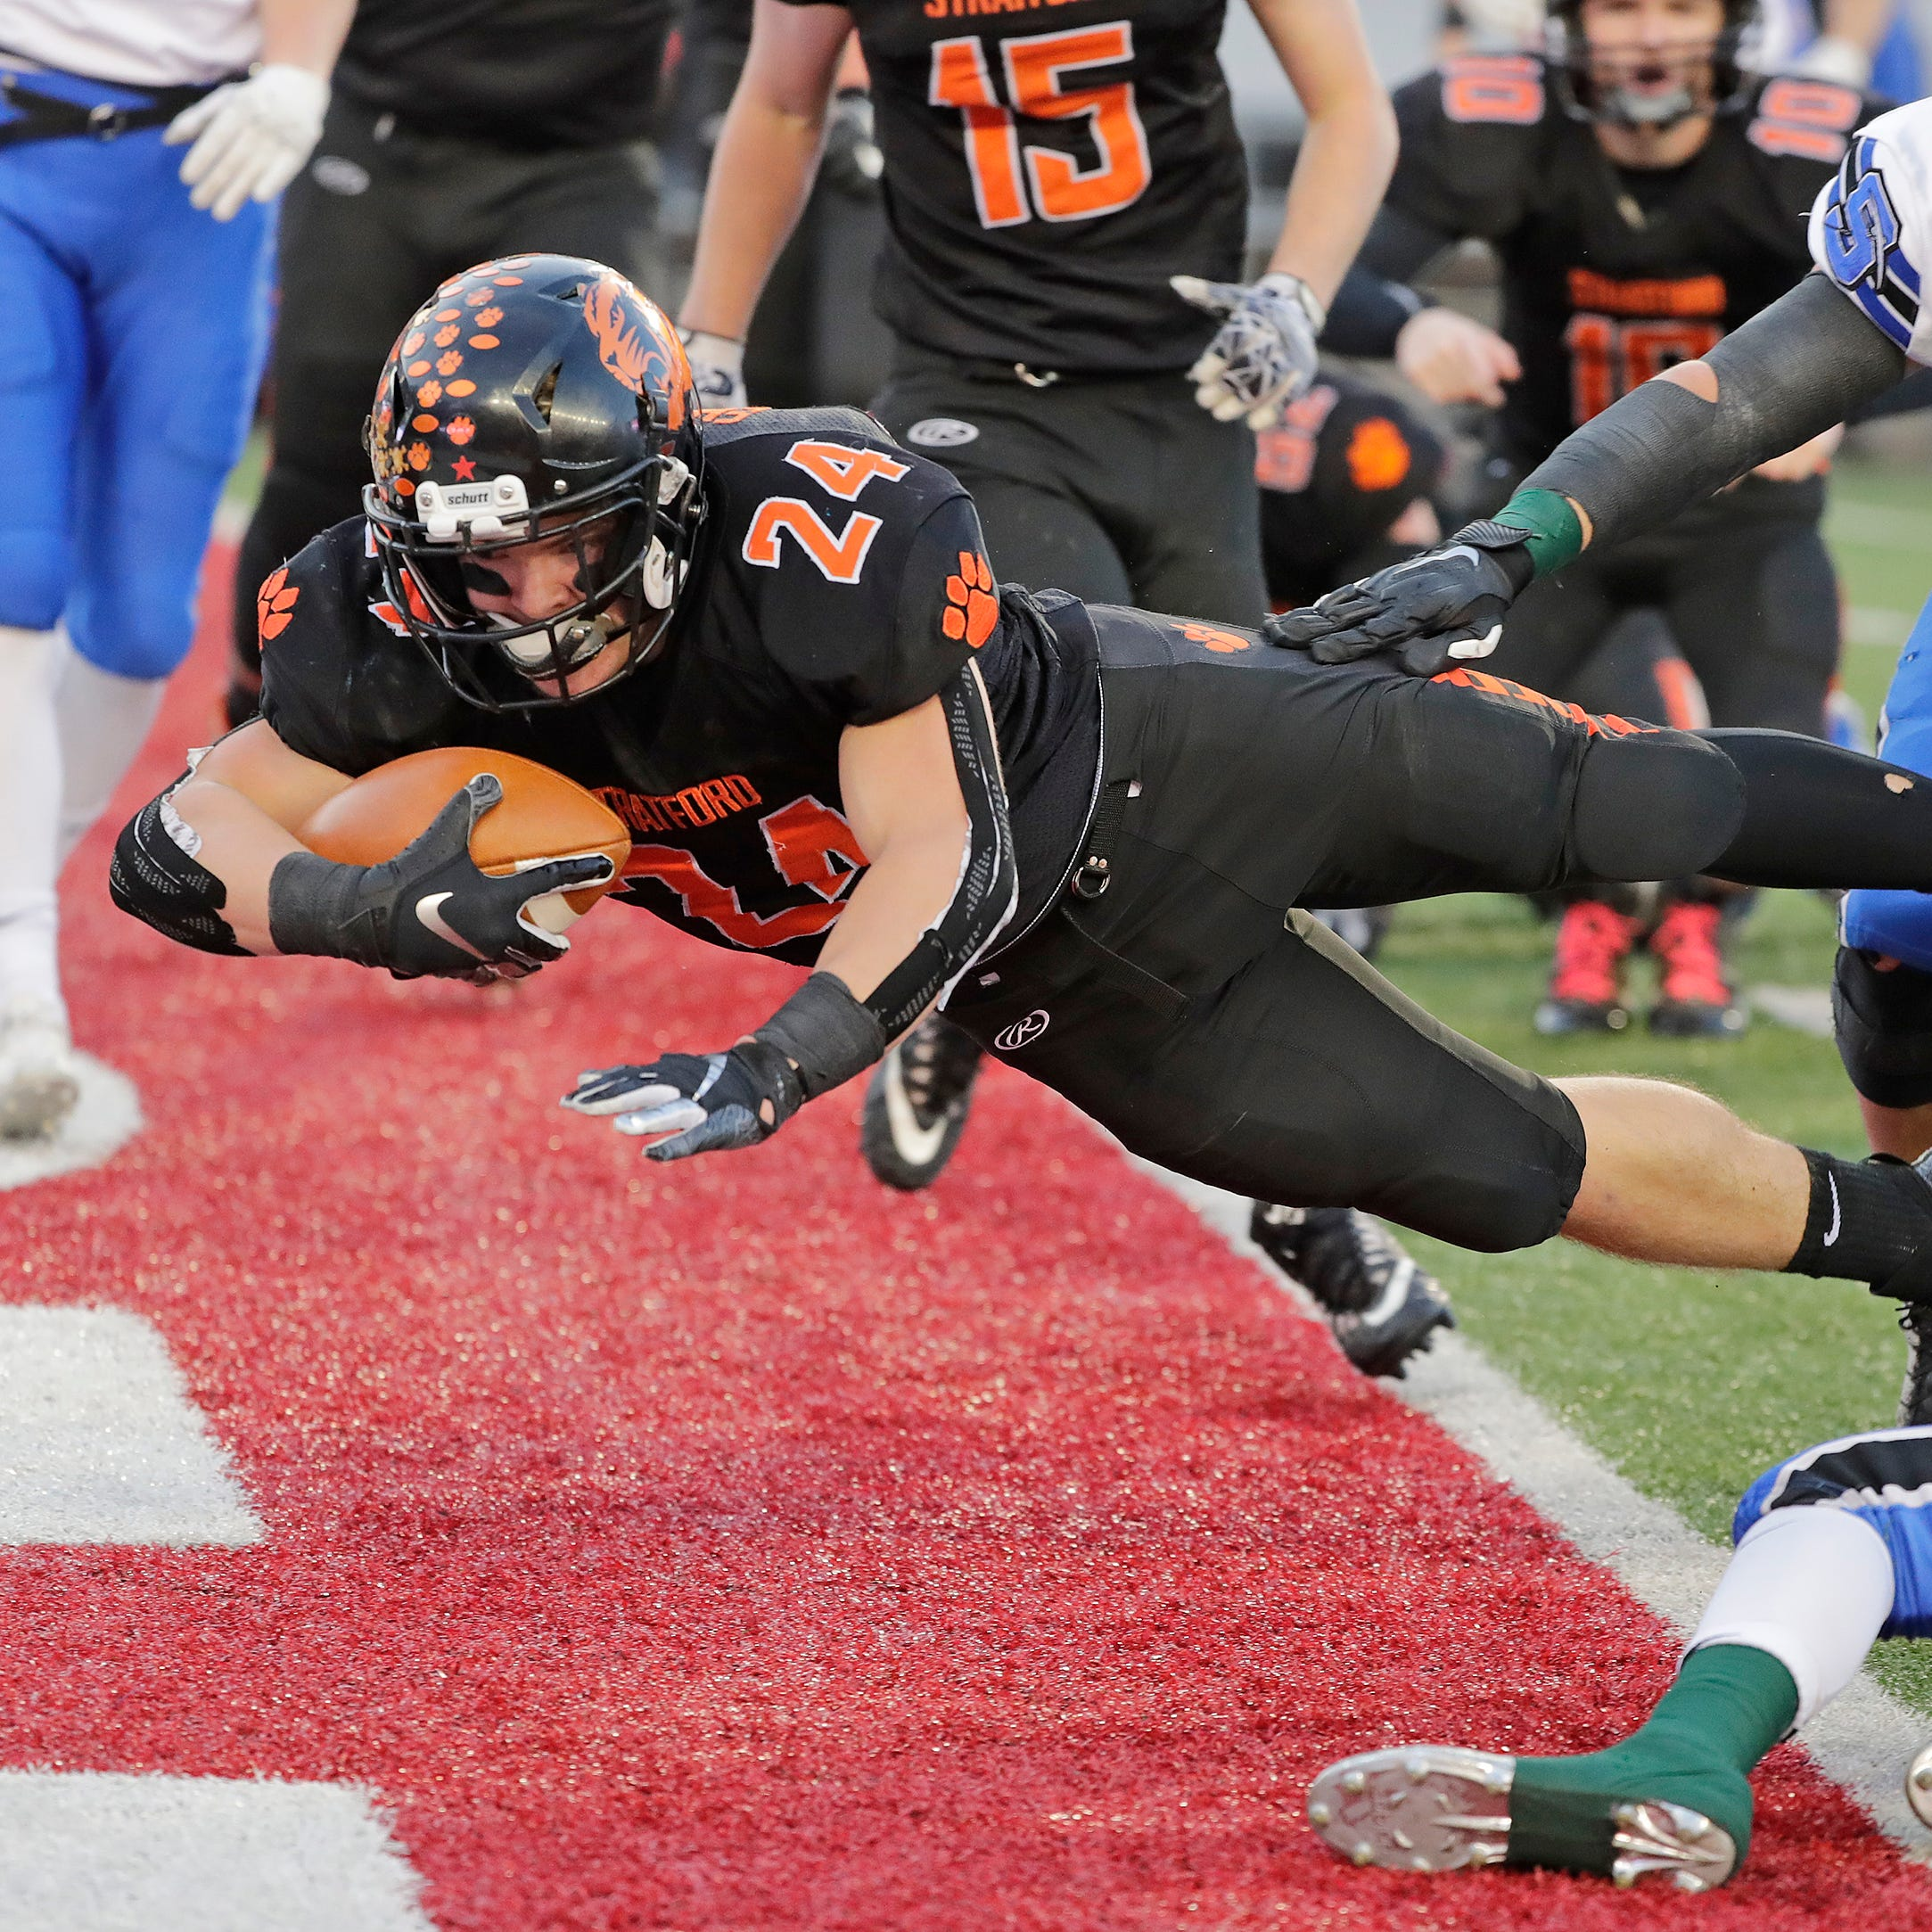 WIAA state football: Stratford falls to St. Mary's Springs in Division 5 title